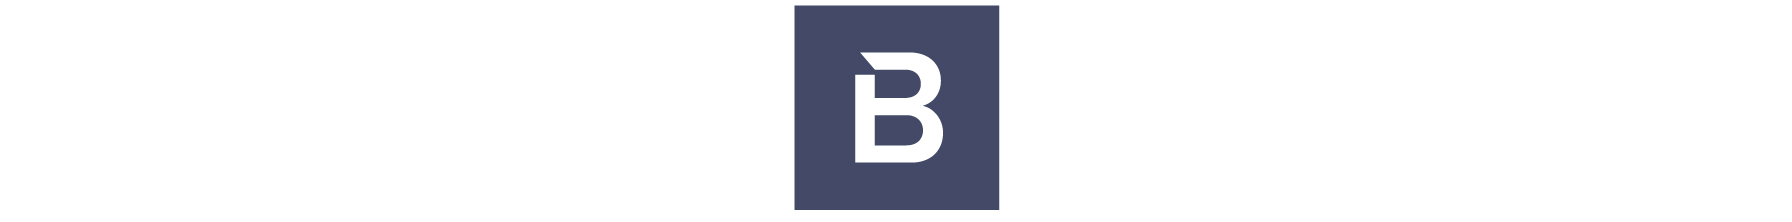 Adaptable mark for Charles Bentley to be used on products and favicons.